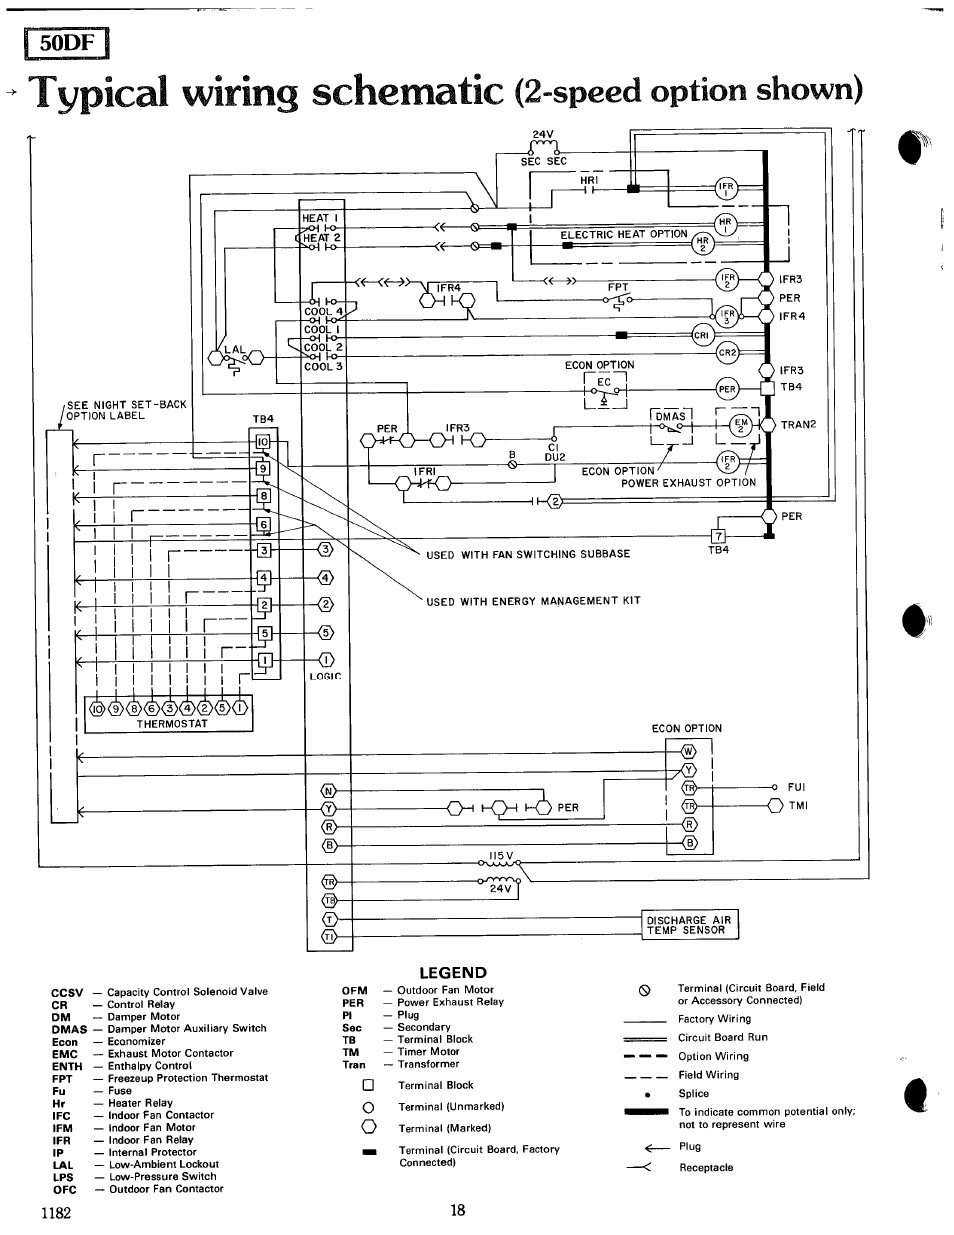 medium resolution of fsodfl ccsv typiccll wiring schematic carrier modu pac 50df user manual page 18 37